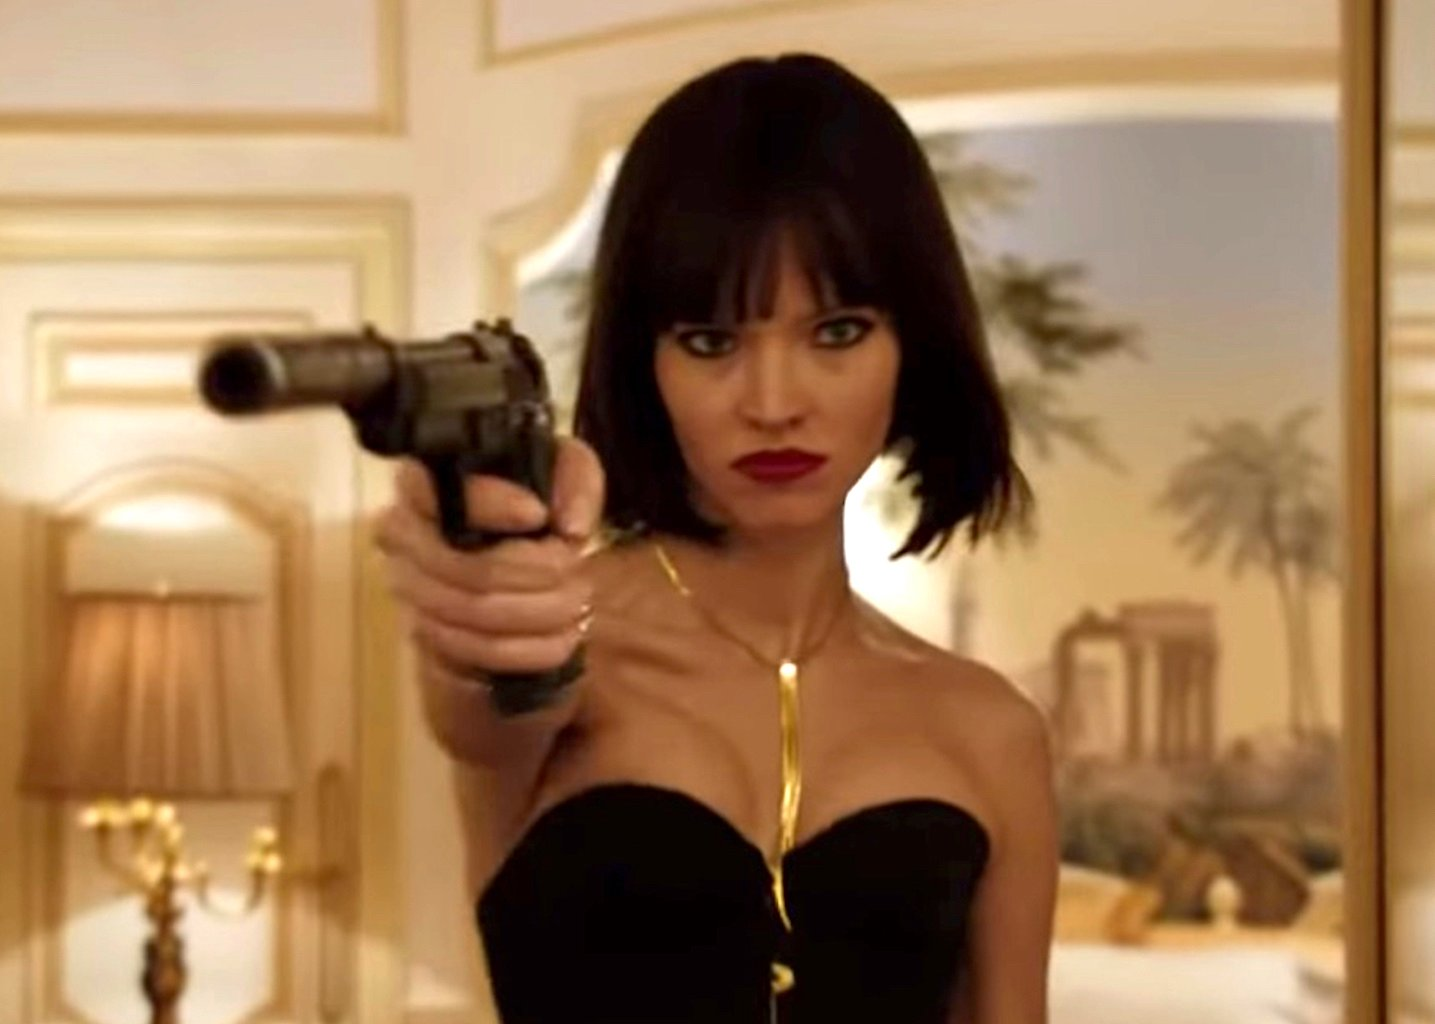 Luc Besson's spy thriller Anna shows the West is still hung up on harmful stereotypes of Russian women